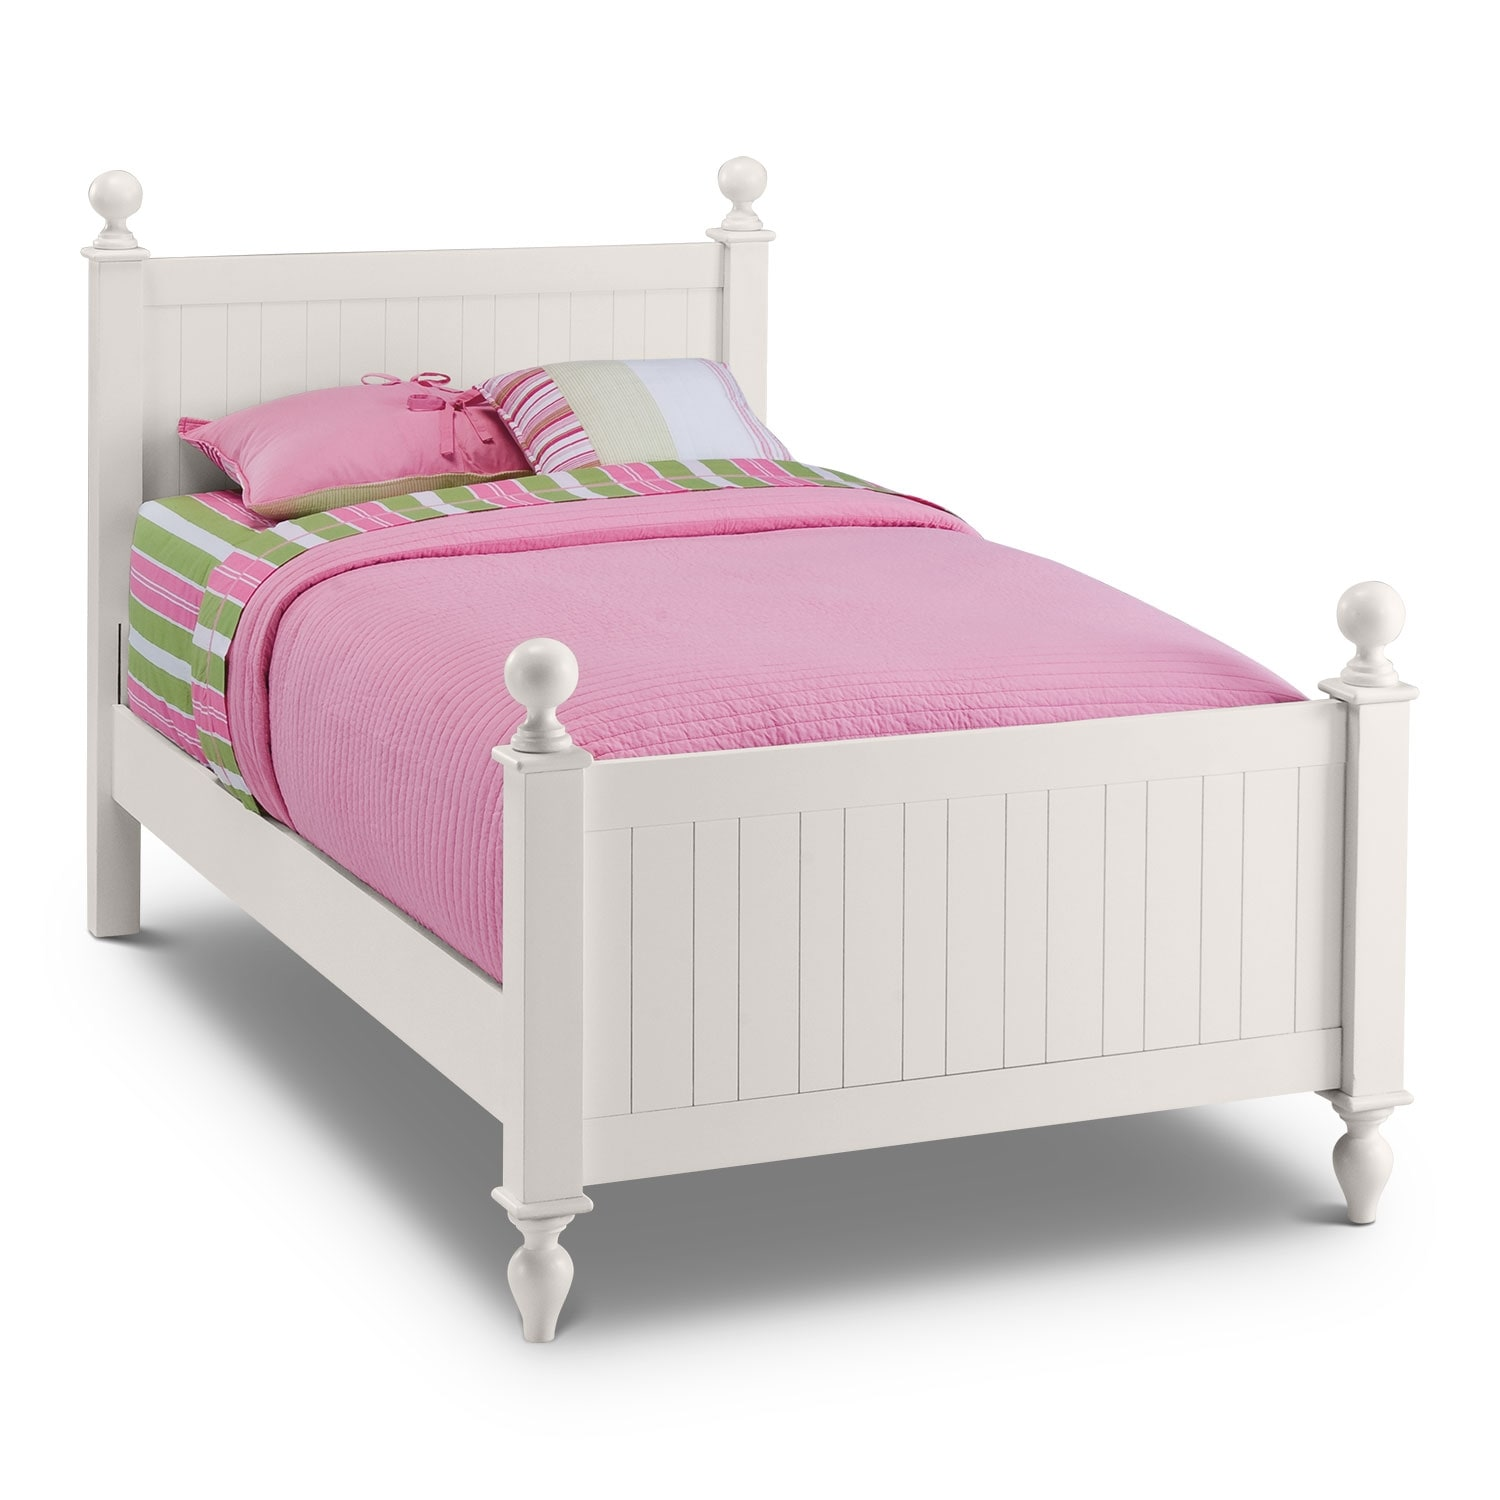 Fetching Mattresses Twin Bed Comforter Twin Beds Sale Bedroom Furniture Colorworks Twin Bed Colorworks Twin Bed Value City Furniture baby White Twin Bed